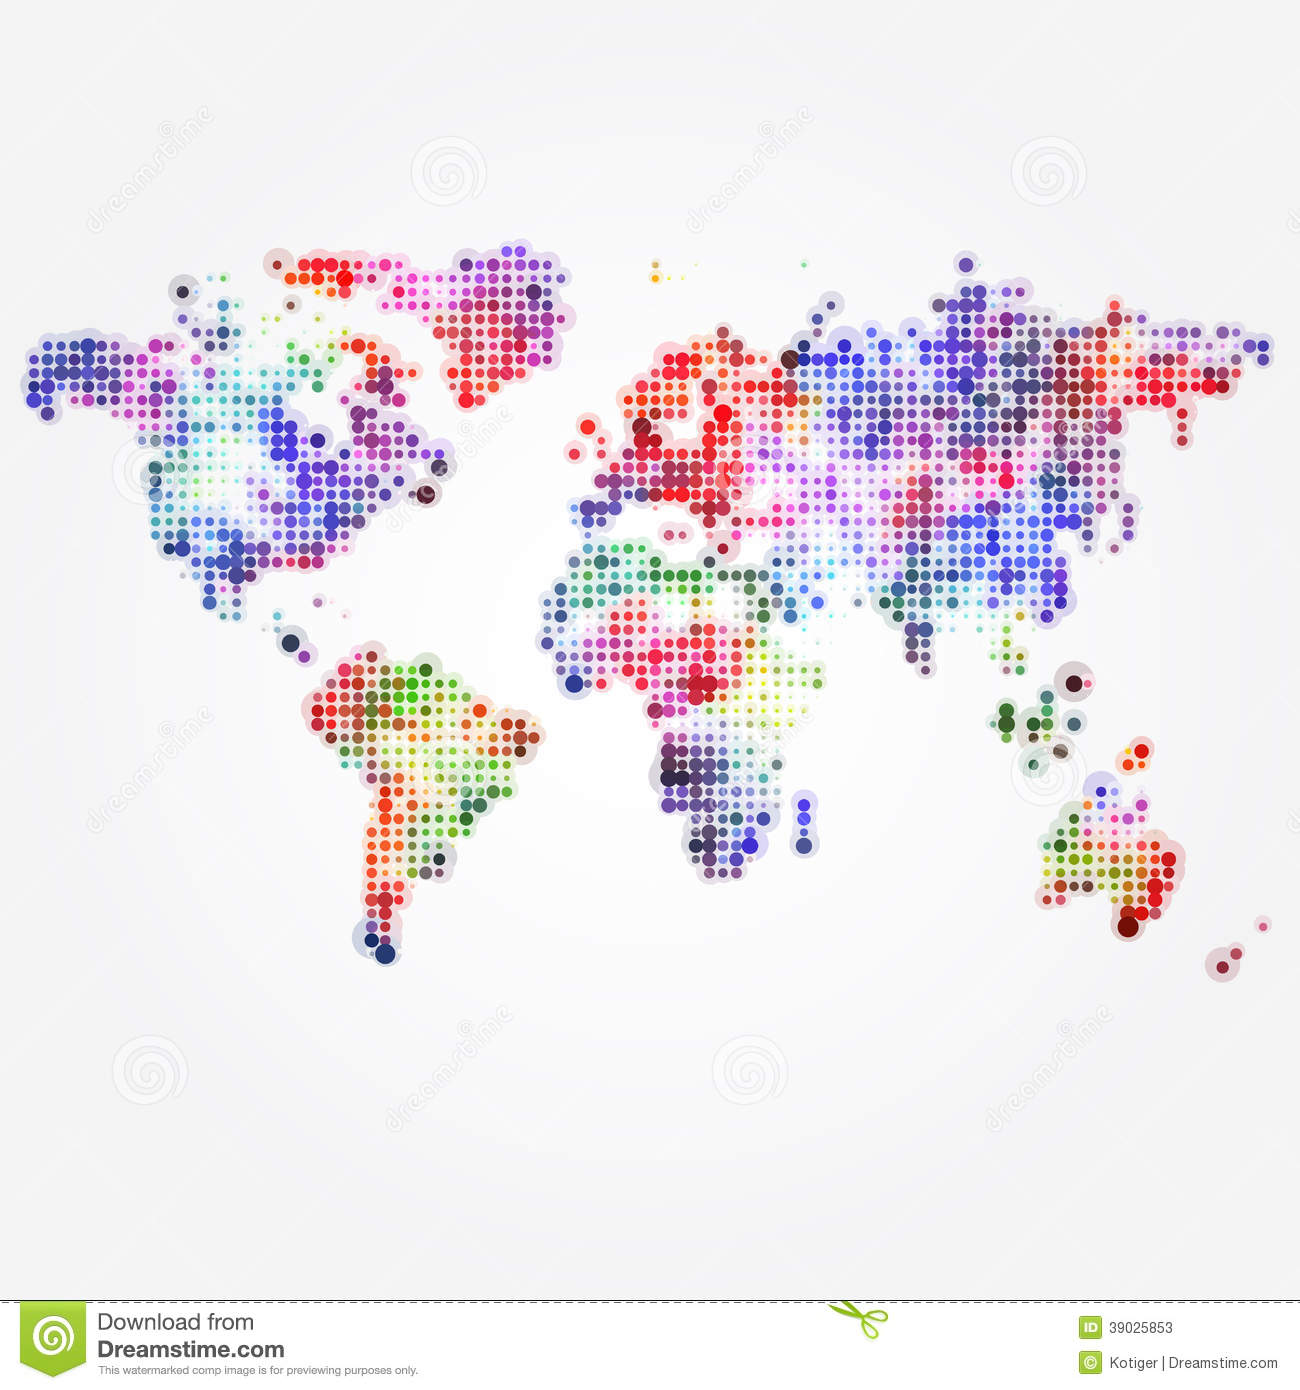 Watercolor World Map Desktop Wallpaper Colorful